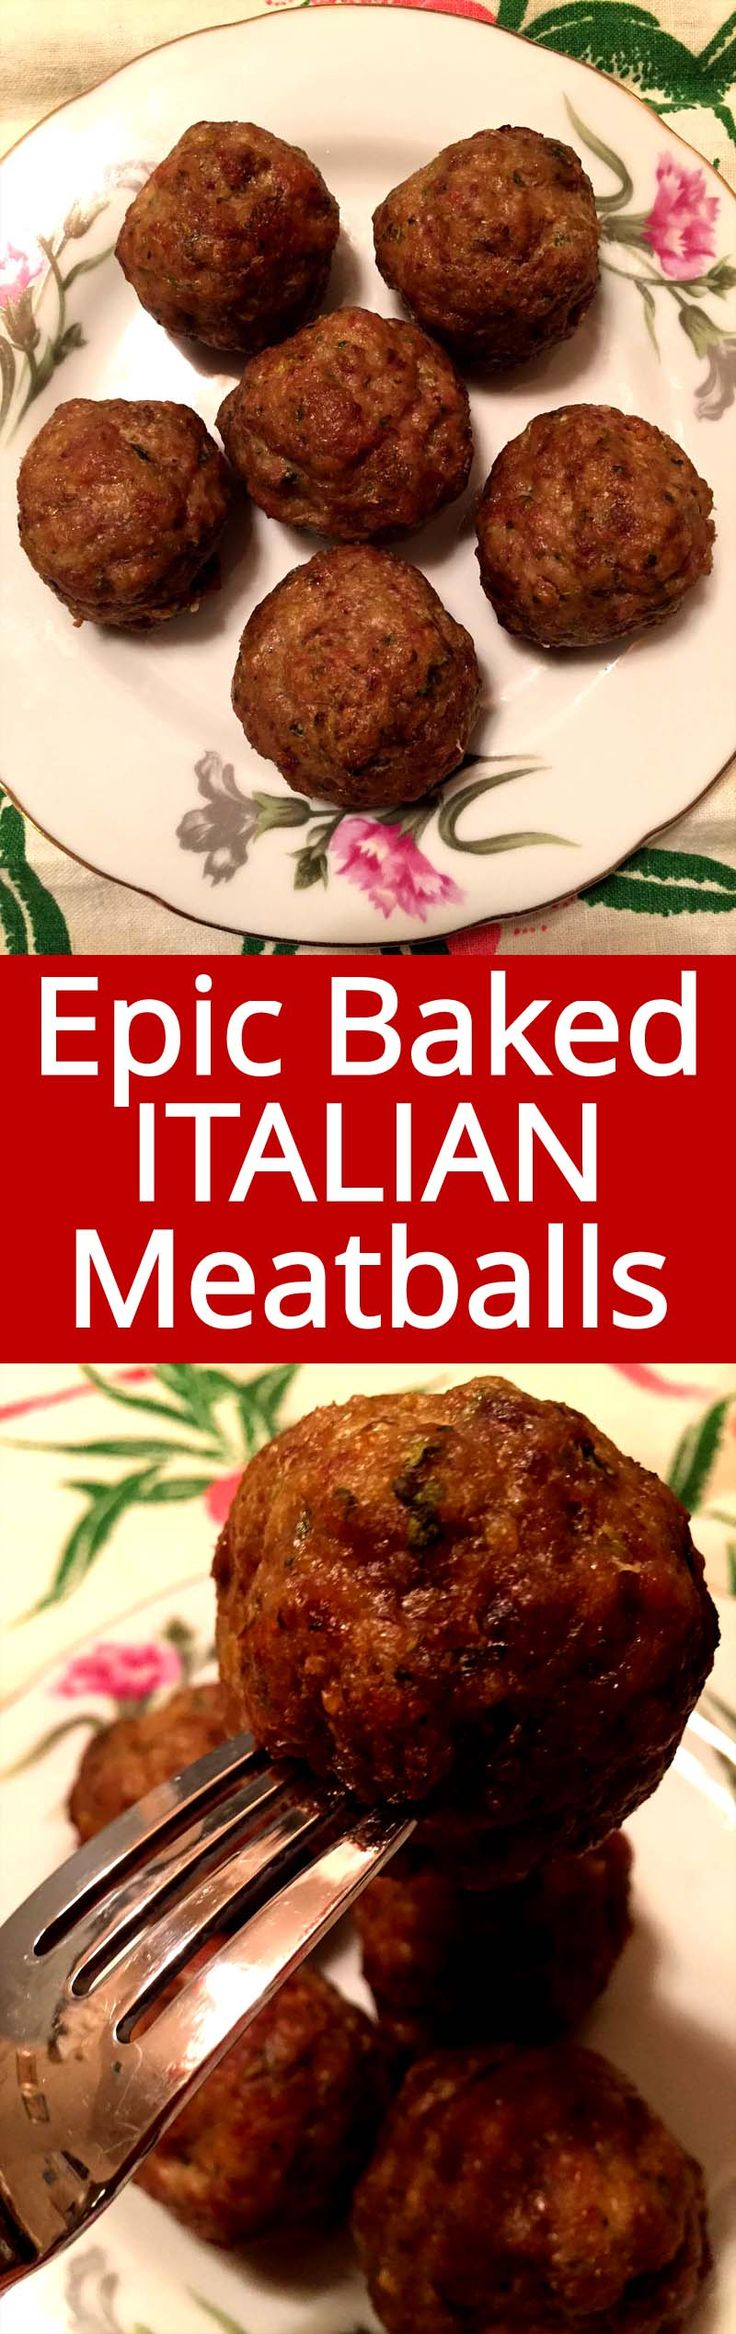 These baked Italian meatballs are so easy to make, tender and juicy! This is my favorite baked meatballs recipe, I want to make them over and over and over again!